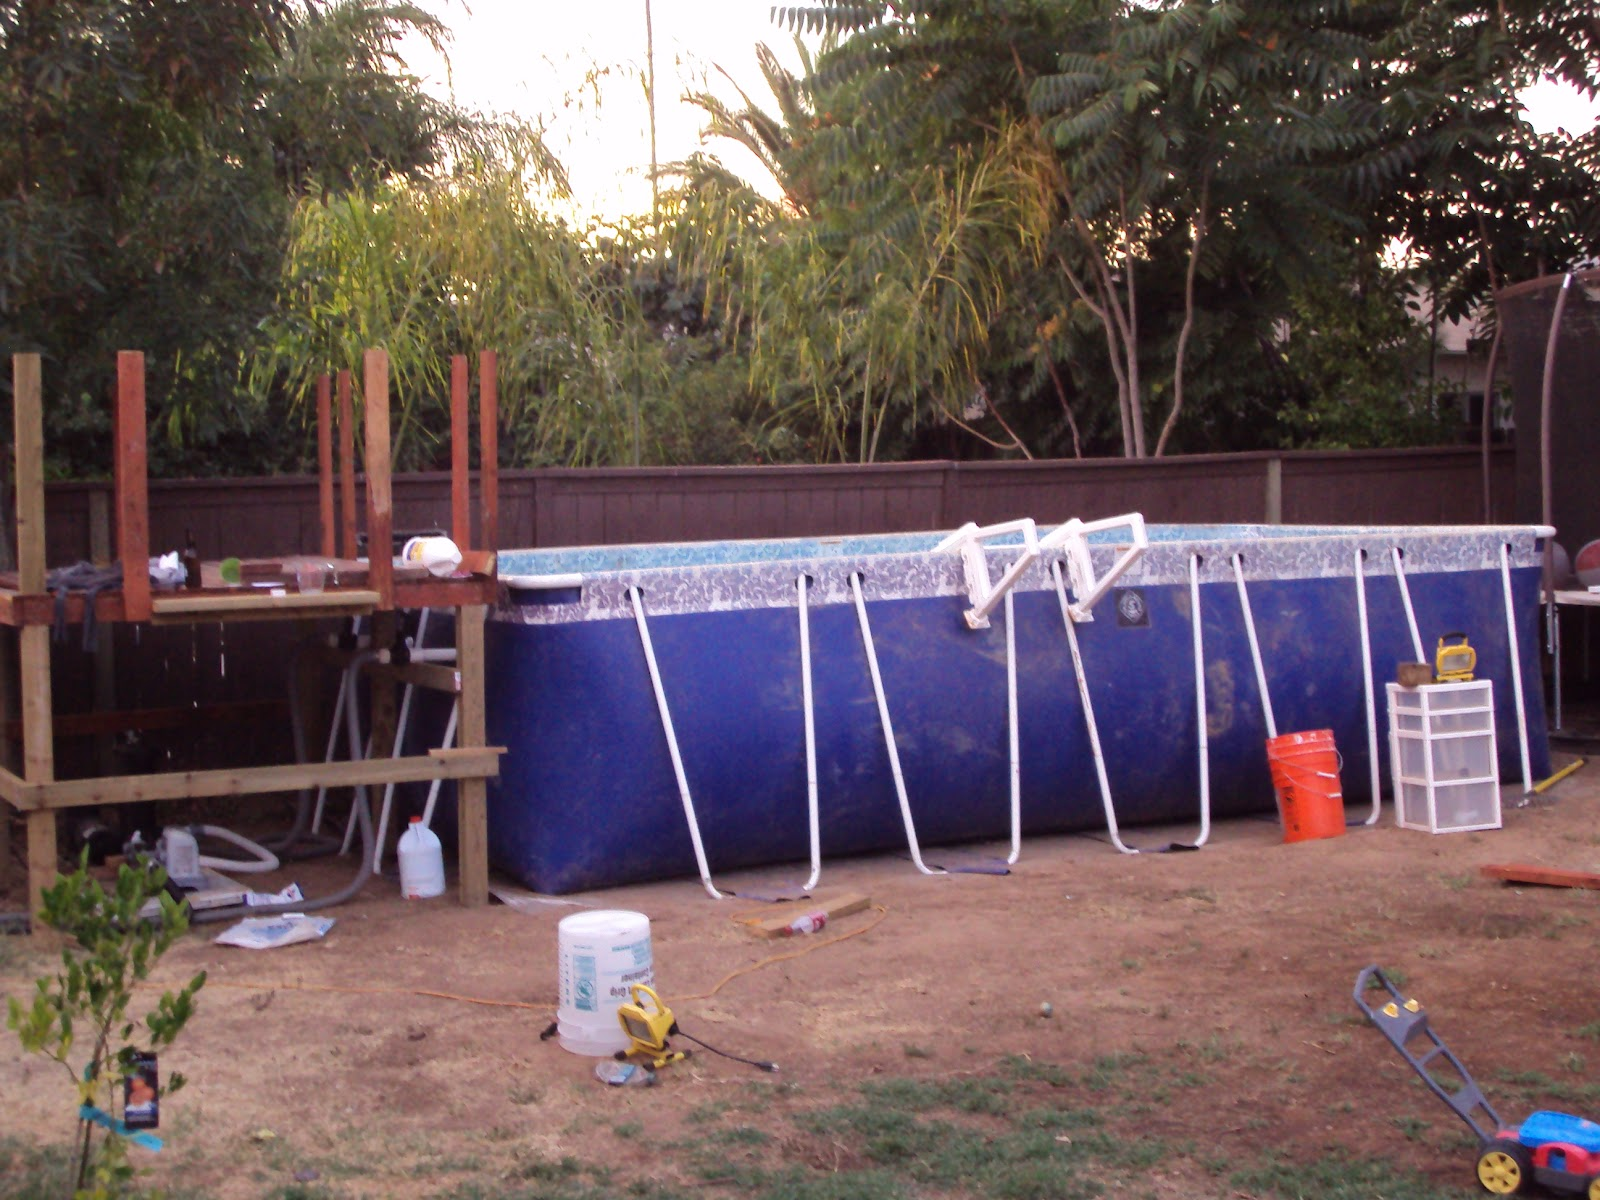 This InSane House DIY Backyard Landscaping Above Ground Pool